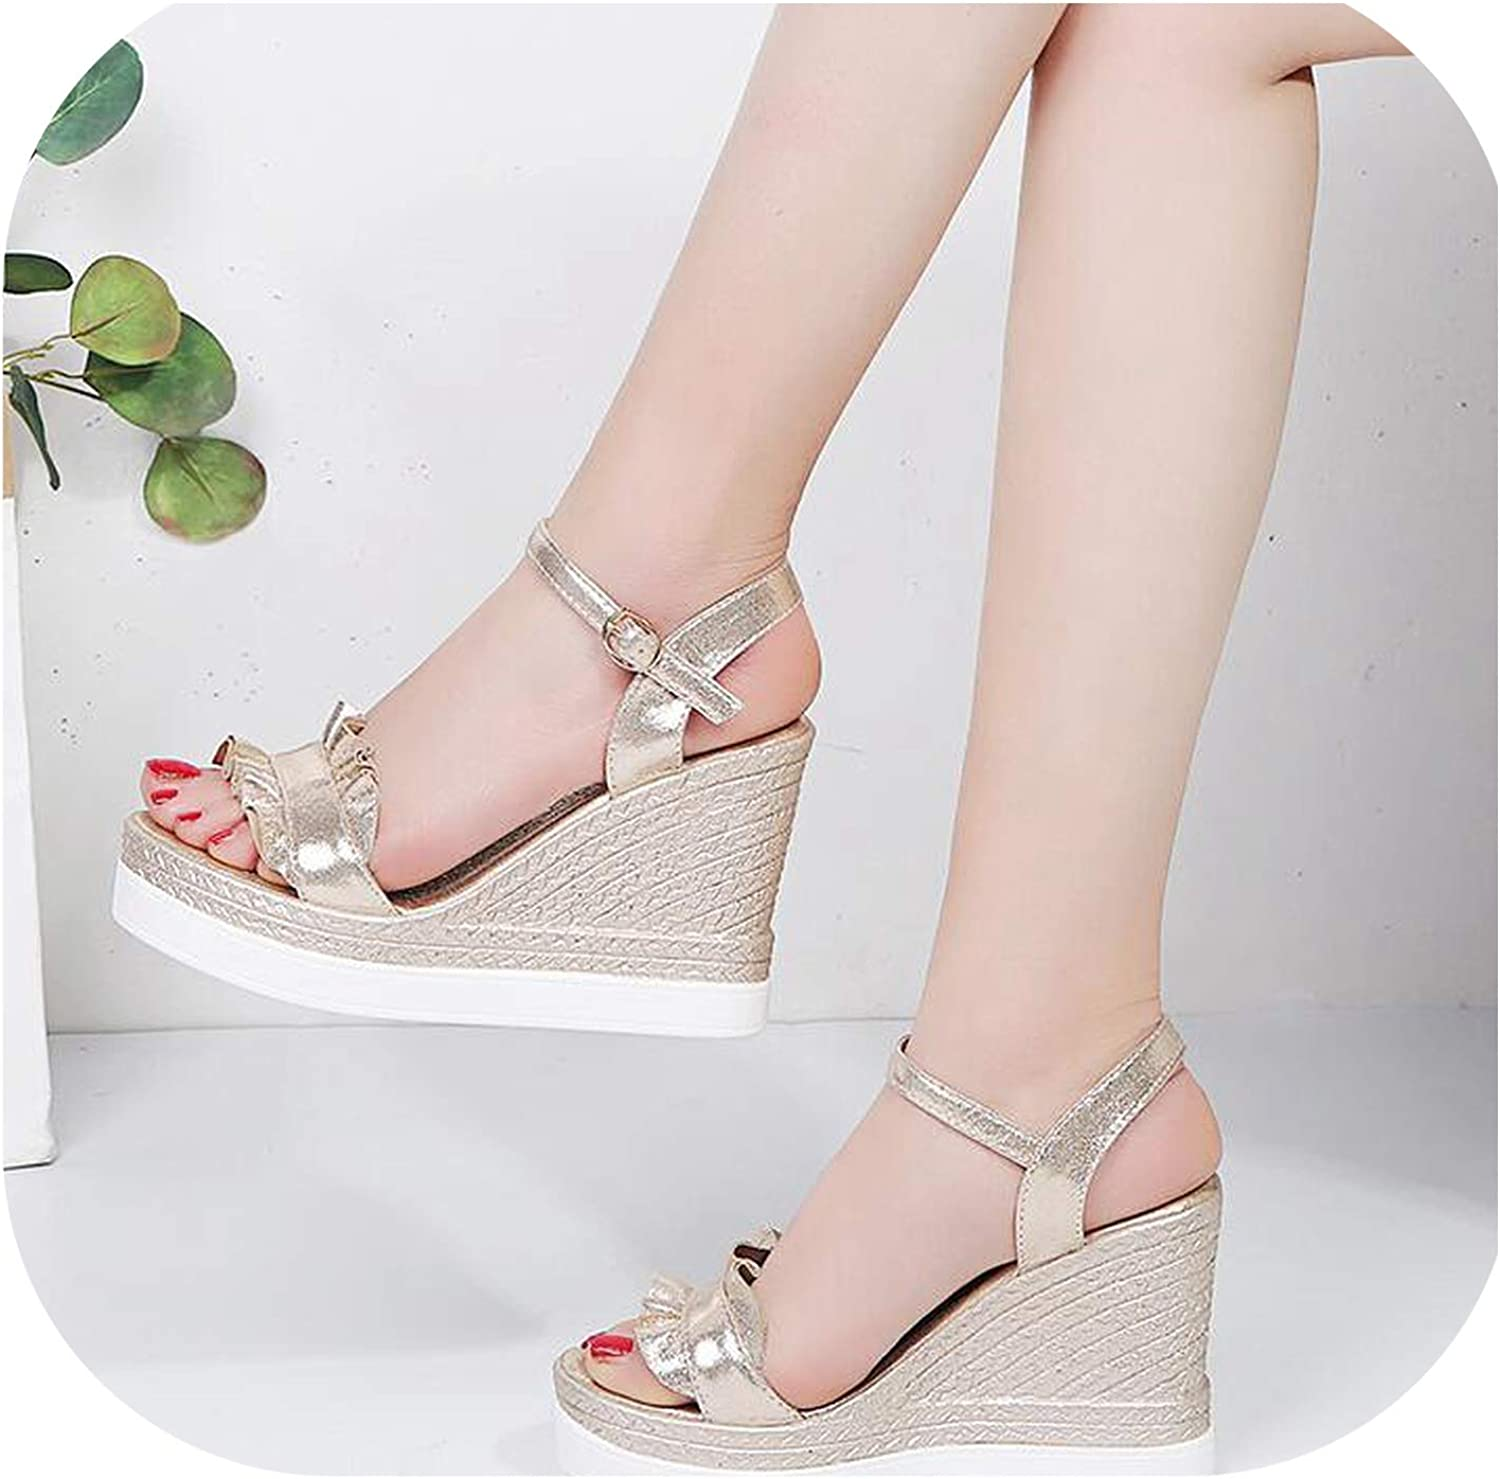 Shine-shine Women Ruffles Sandals Pu Wedges Solid Buckle Fish Mouth HEE shoes F254